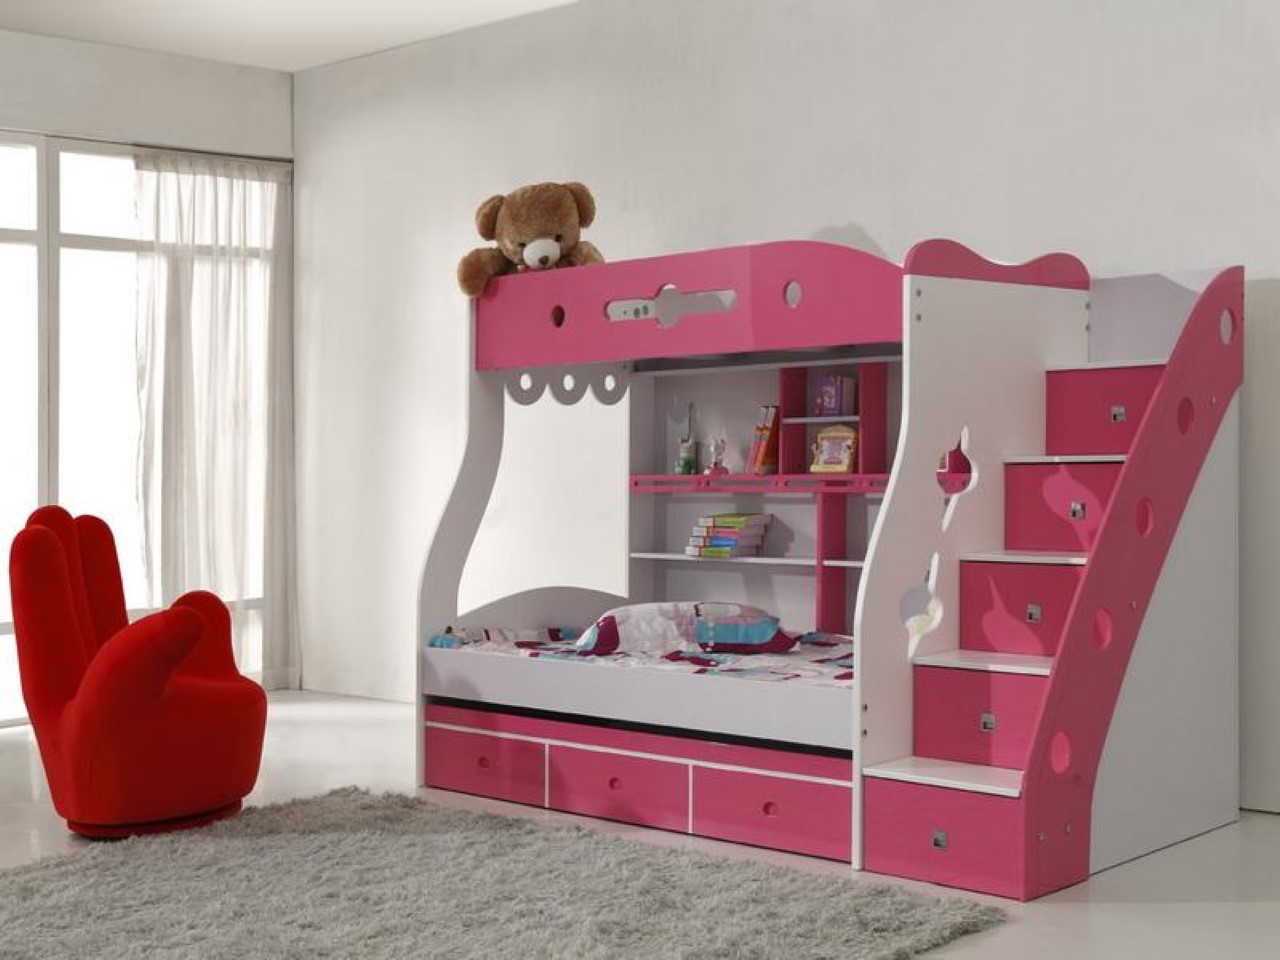 Lovely Red Hand Shaped Chair And Pink Bunk Beds For Girls Near Grey Carpet Rug On  White Great Pictures